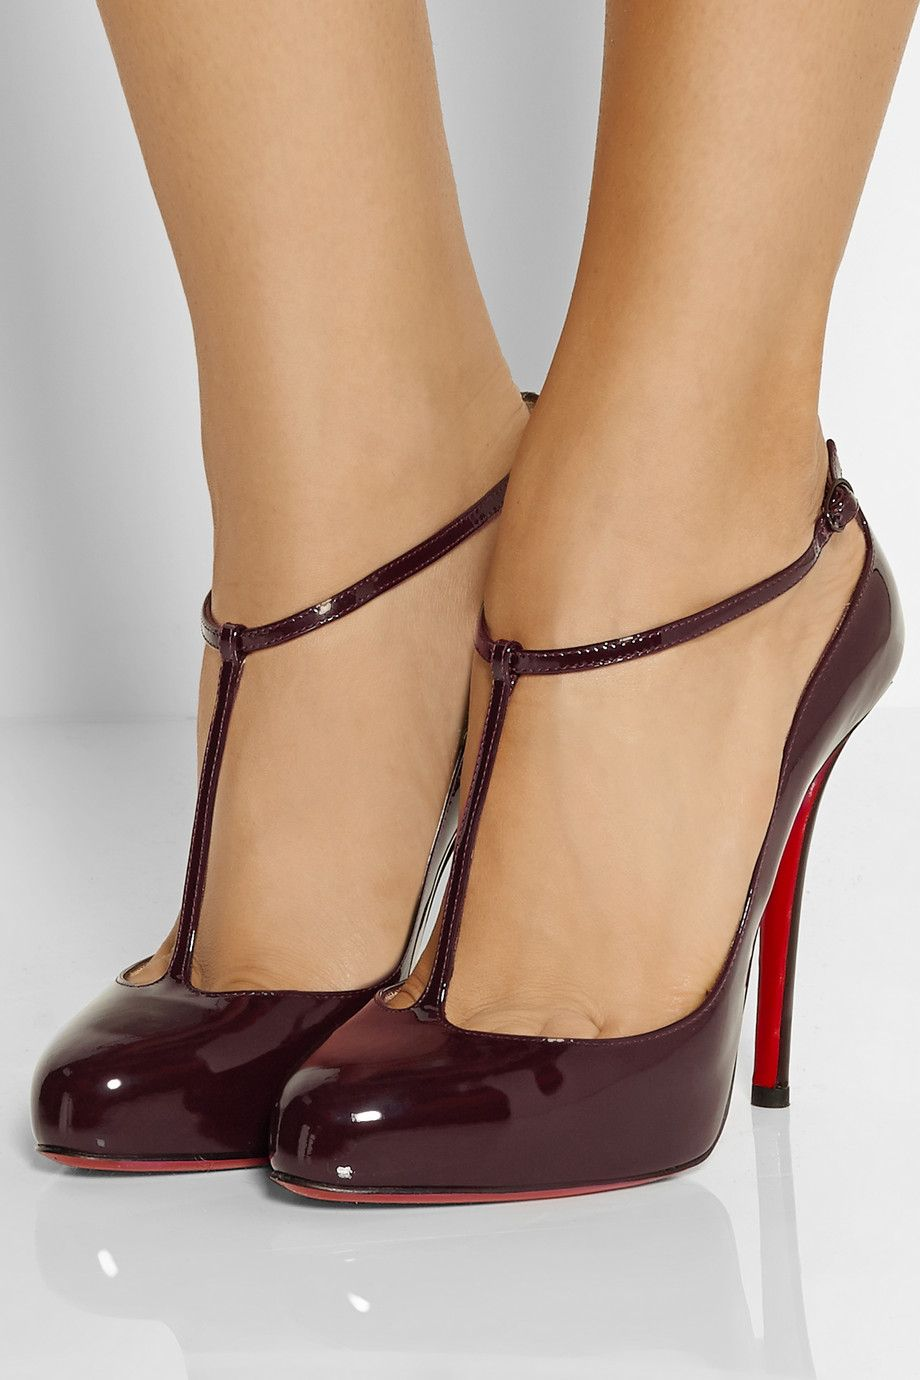 Christian Louboutin DITASSIMA Patent T Strap Heel Pumps Shoes ... ef2eebb075